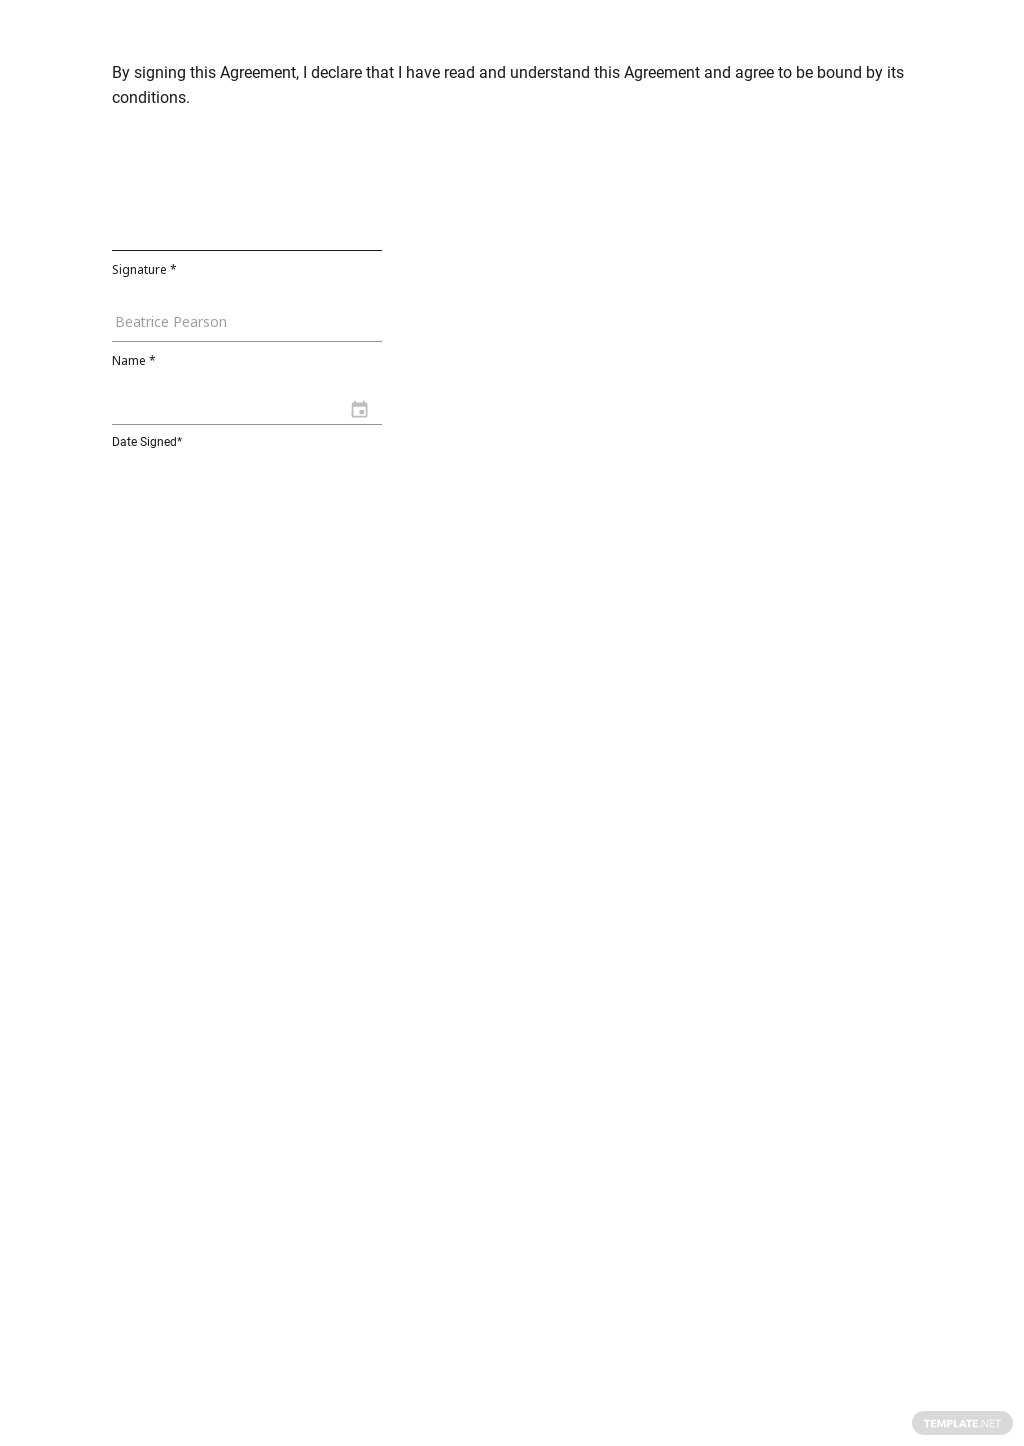 Sample Employee Waiver & Release Agreement Template 1.jpe